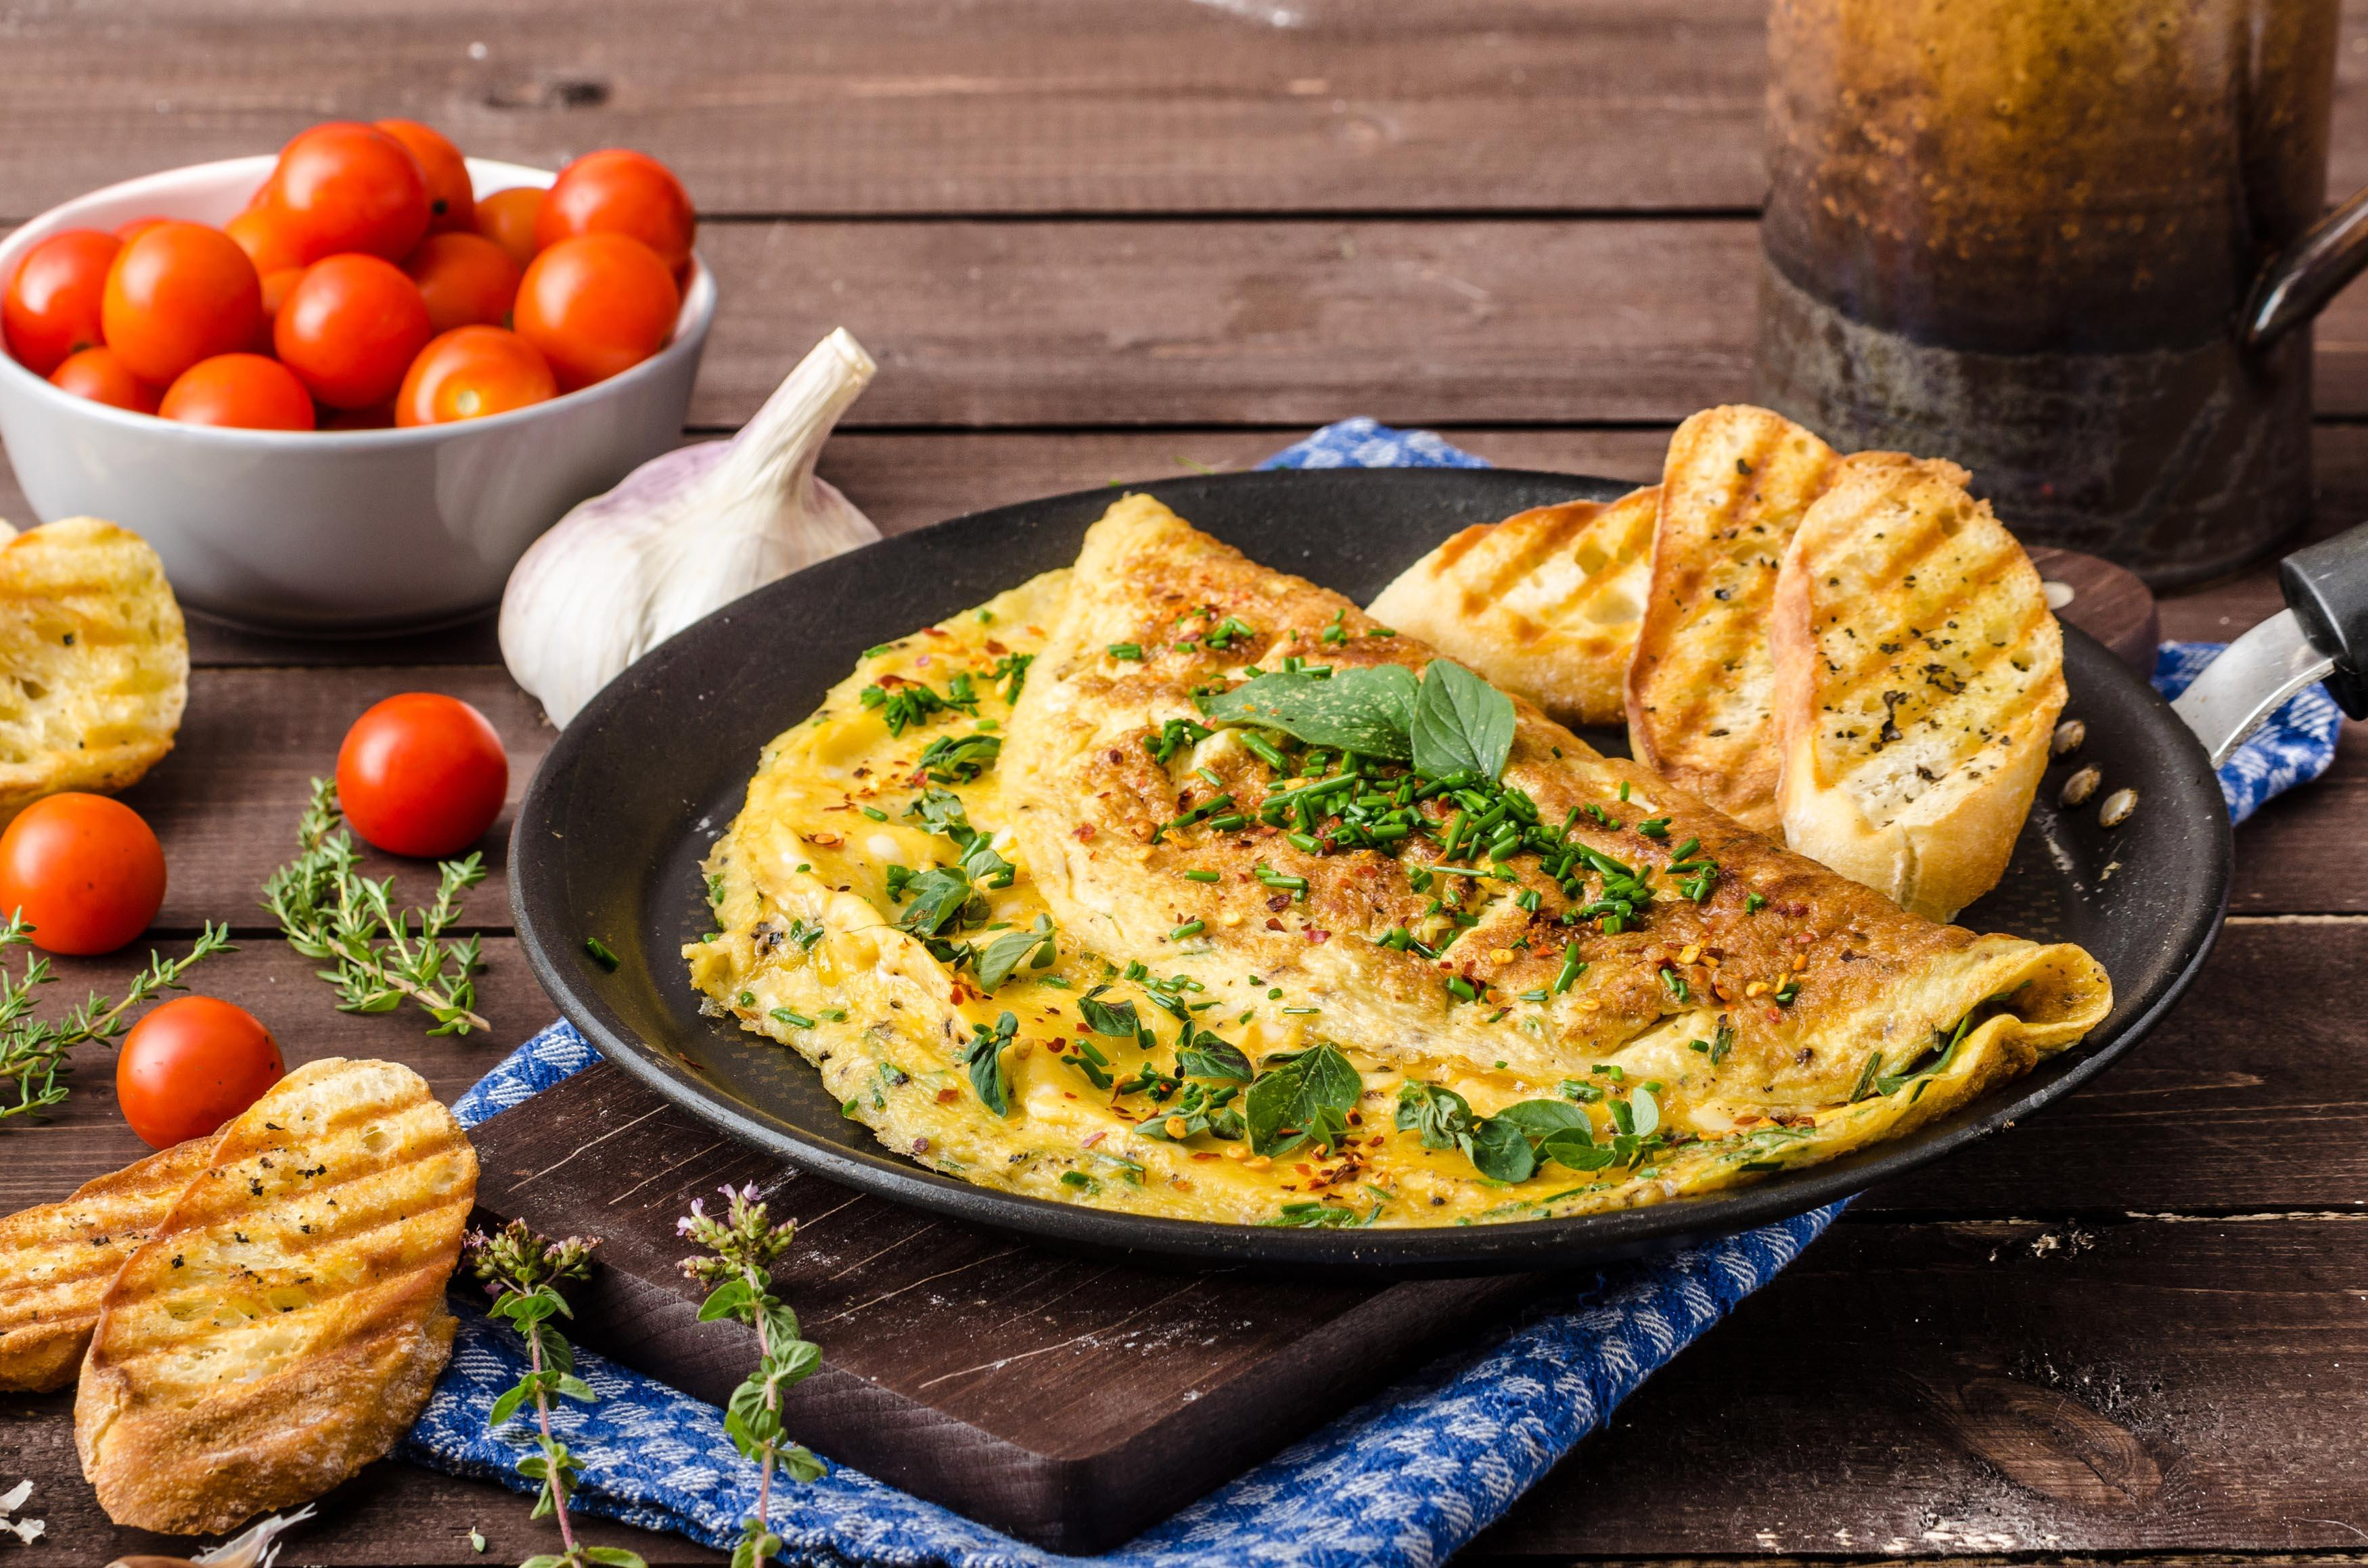 The Omelet Recipes You'll Want To Eat For Every Meal | HuffPost Life